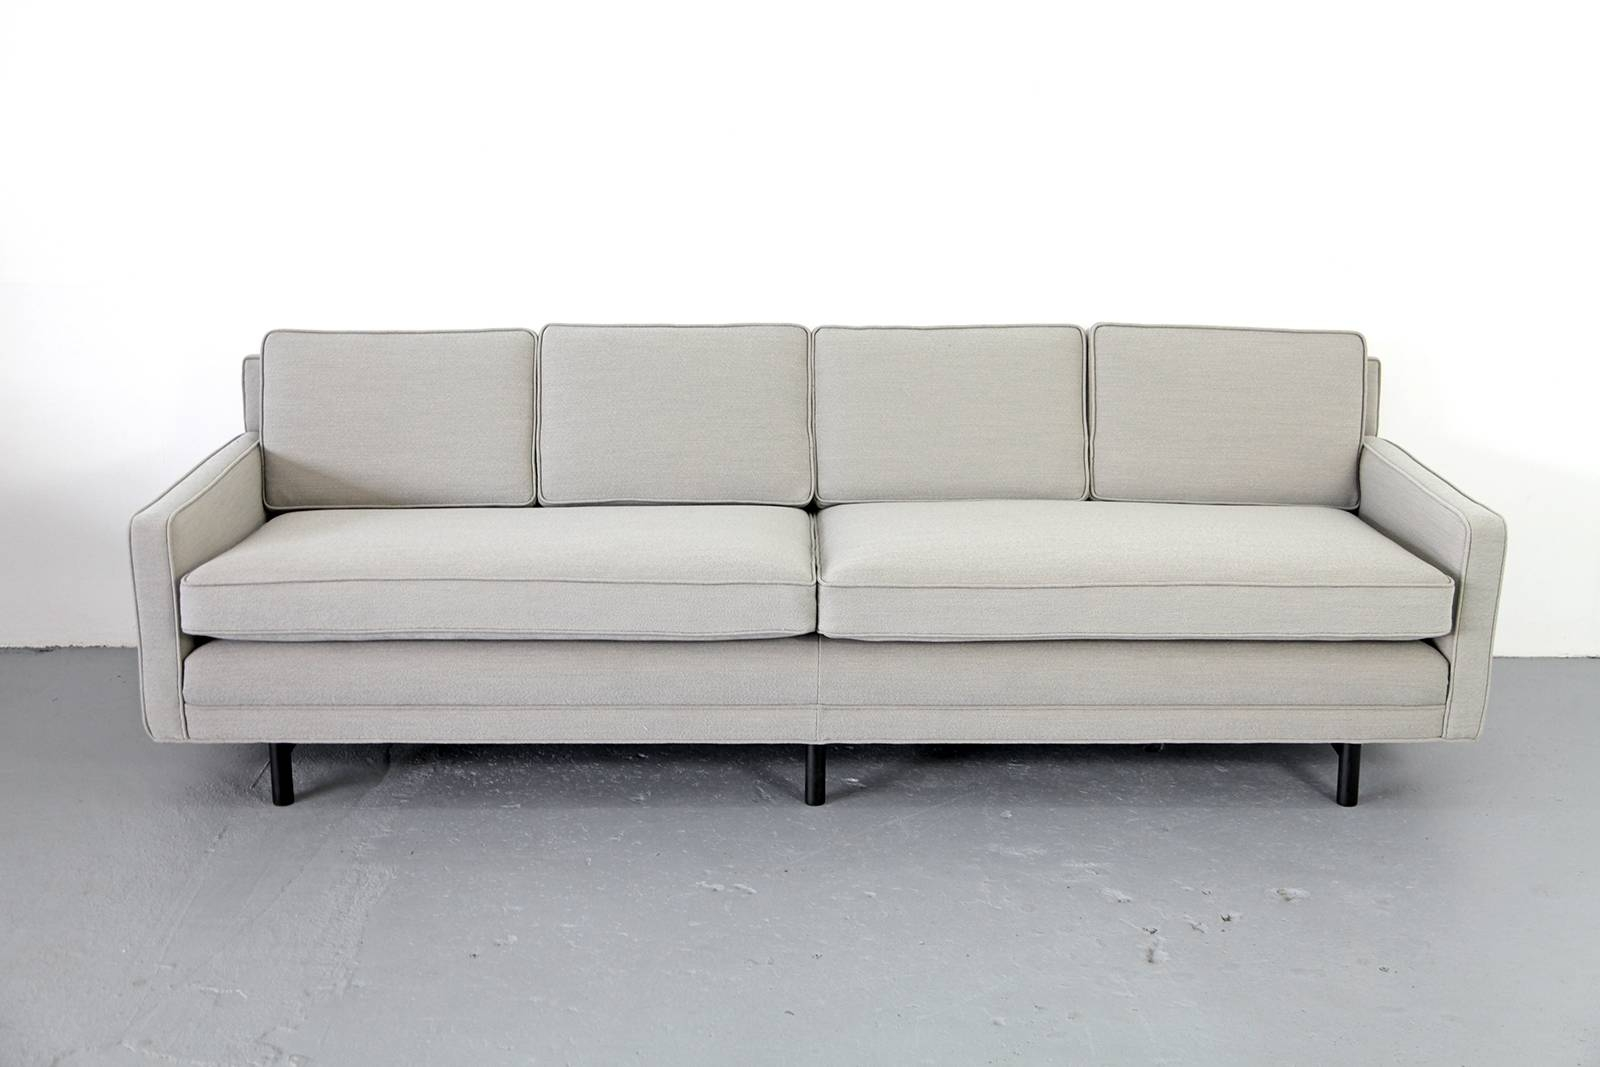 4-Seater Sofapaul Mccobb For Directional For Sale At Pamono throughout 4 Seater Couch (Image 1 of 30)